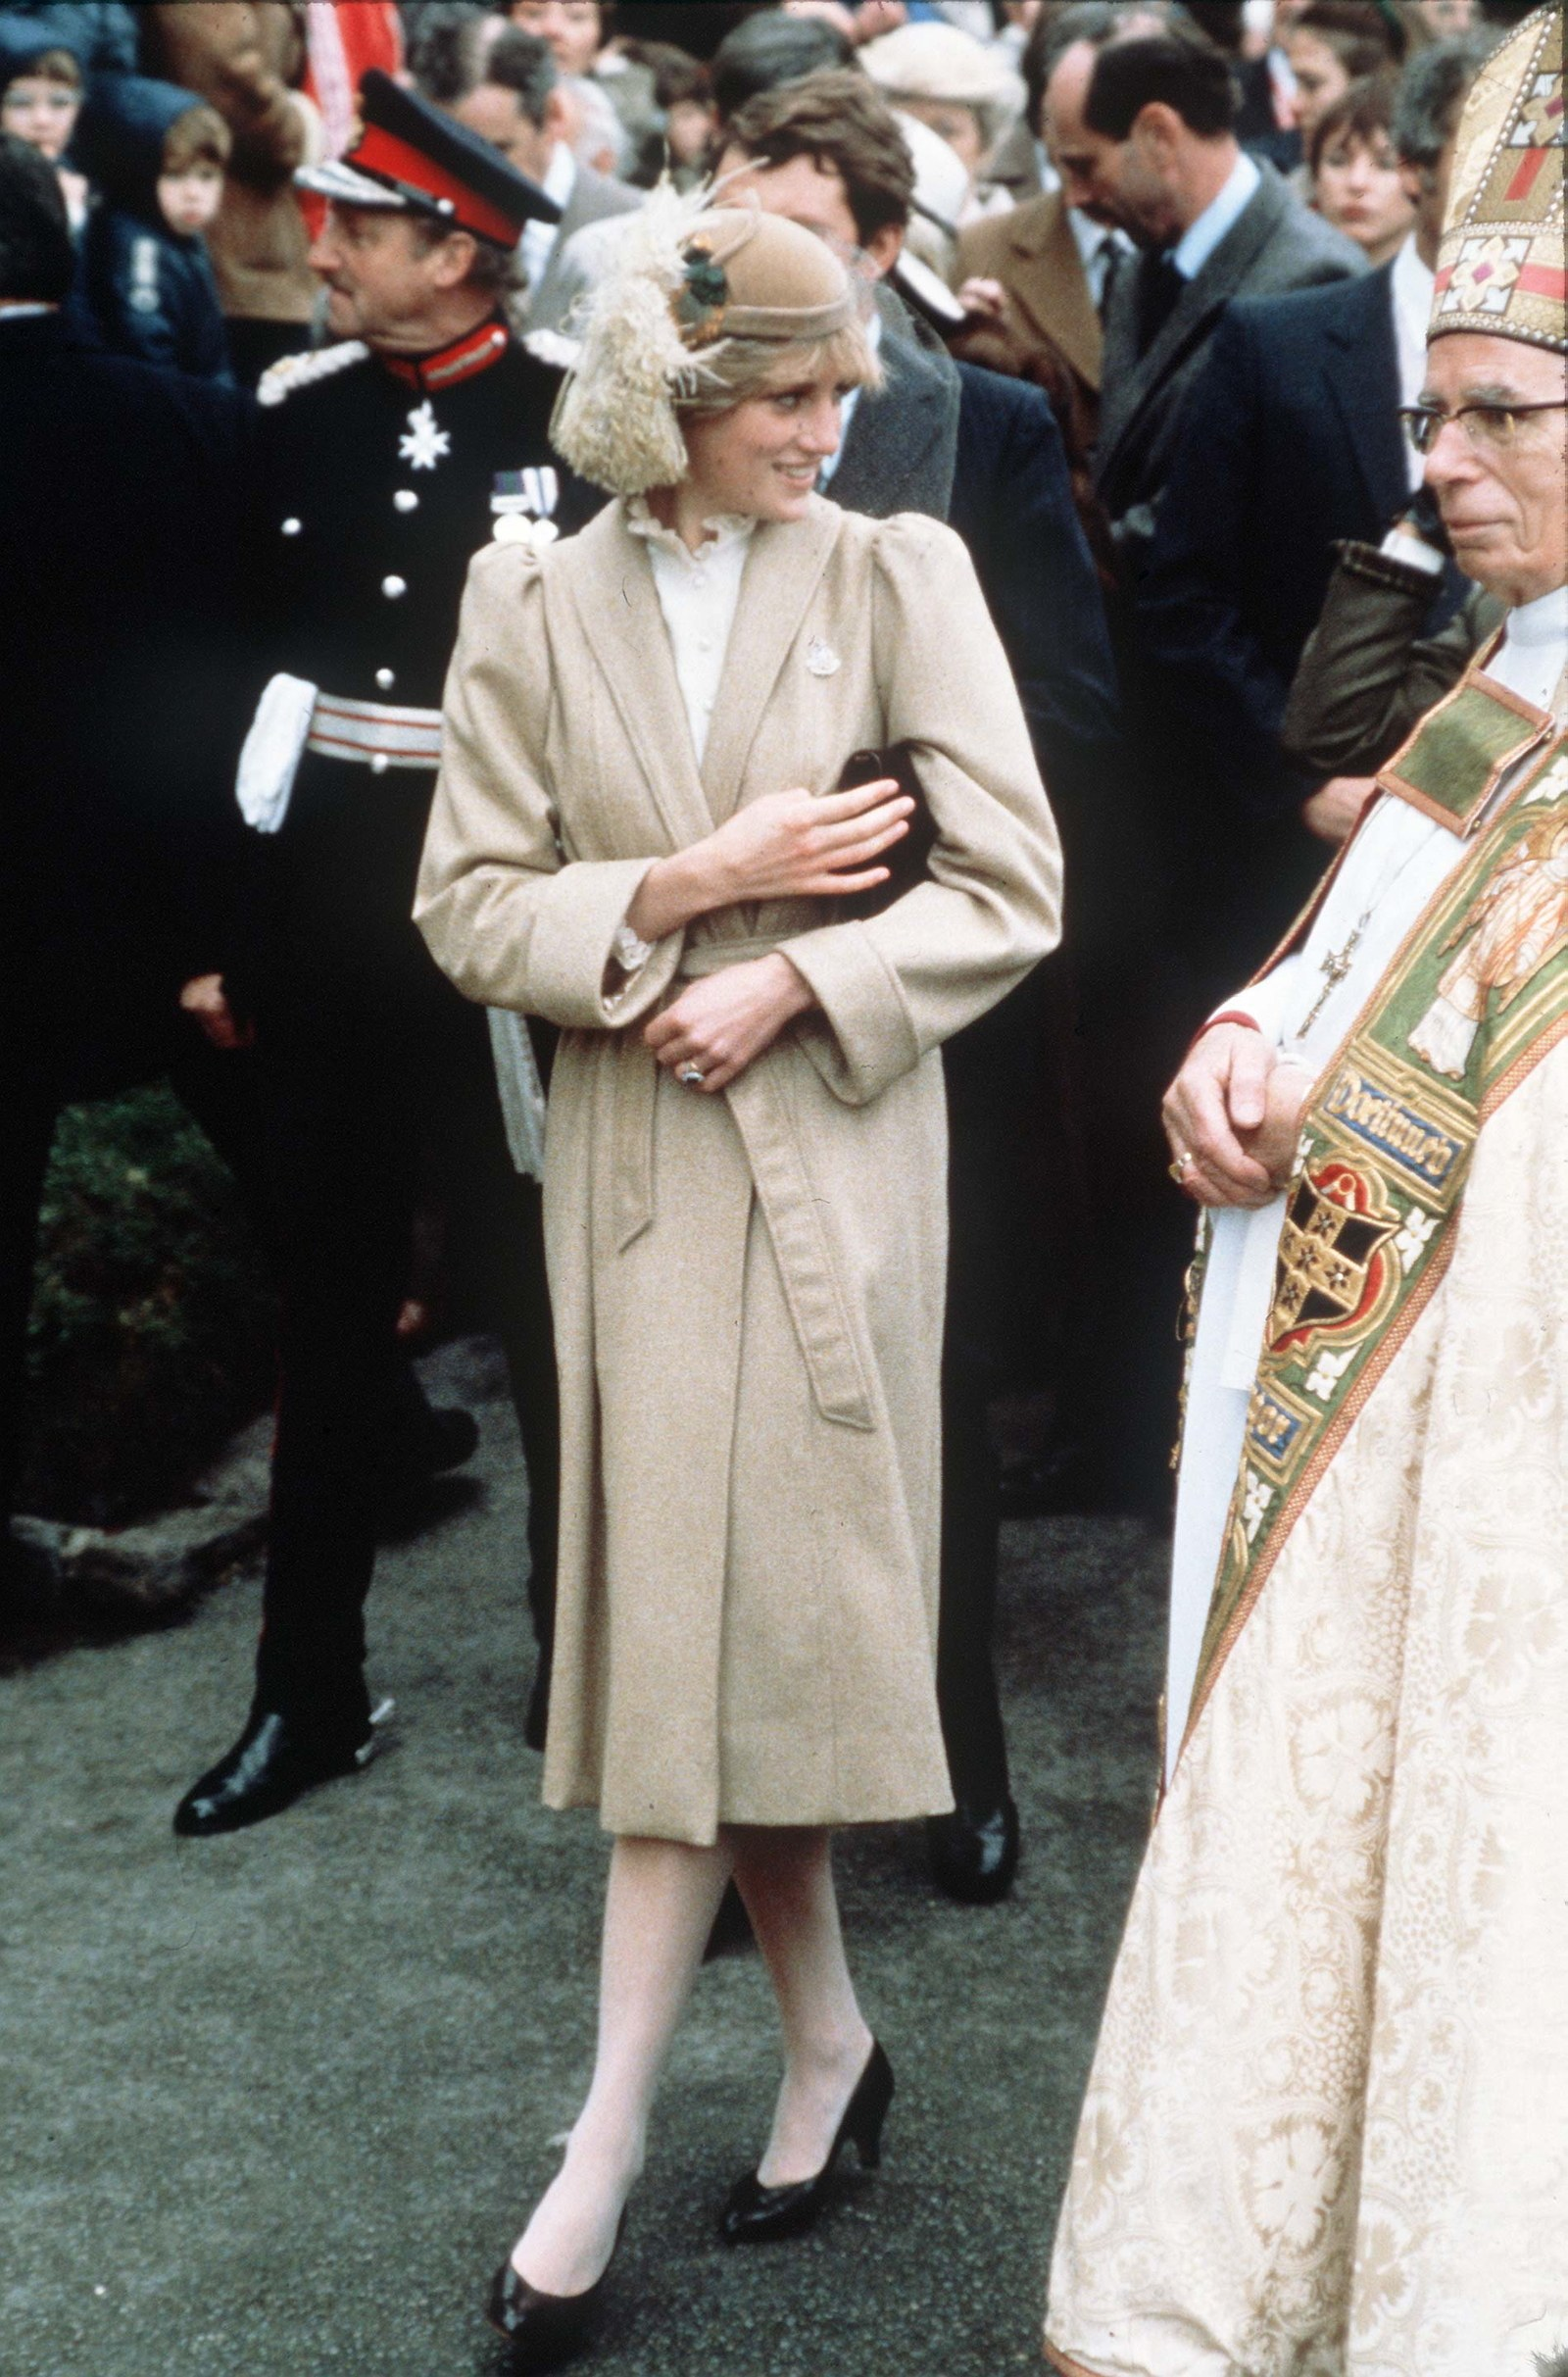 Diana Princess Of Wales Meeting The Crowds On A Wet Day In Carmarthen During Her First Official Visit To Wales.